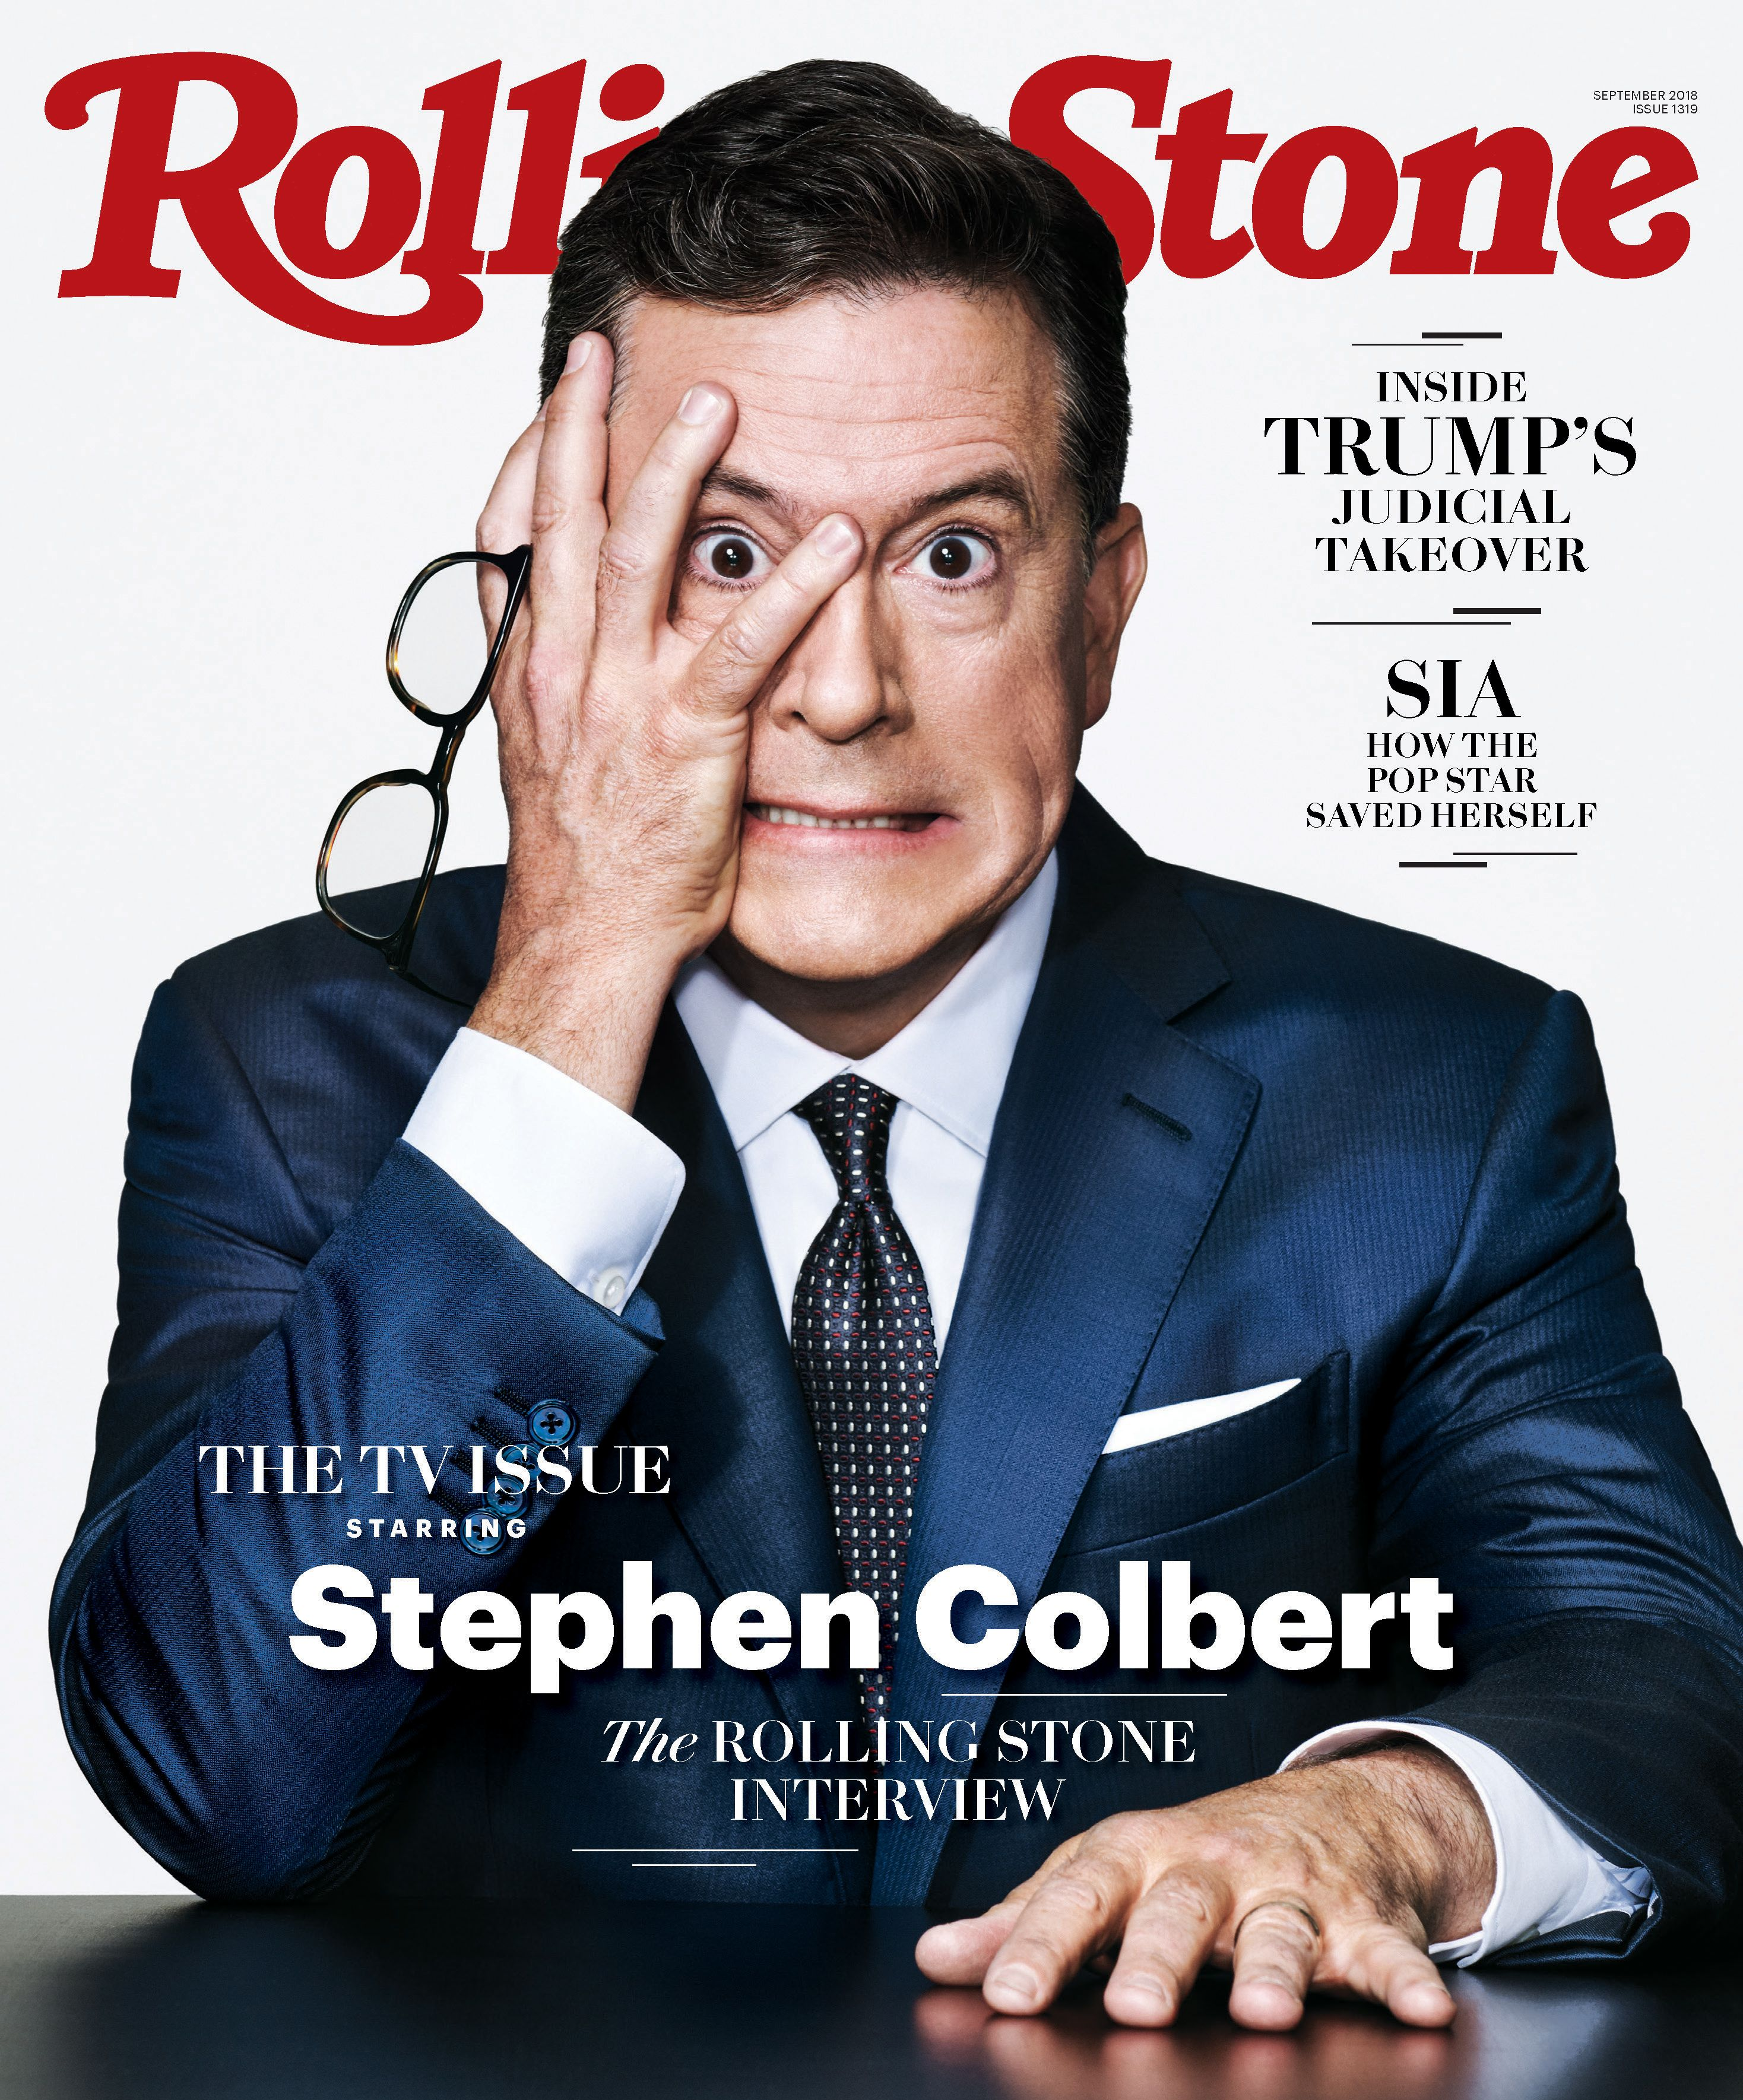 The Triumph of Stephen Colbert   On The Cover of Rolling